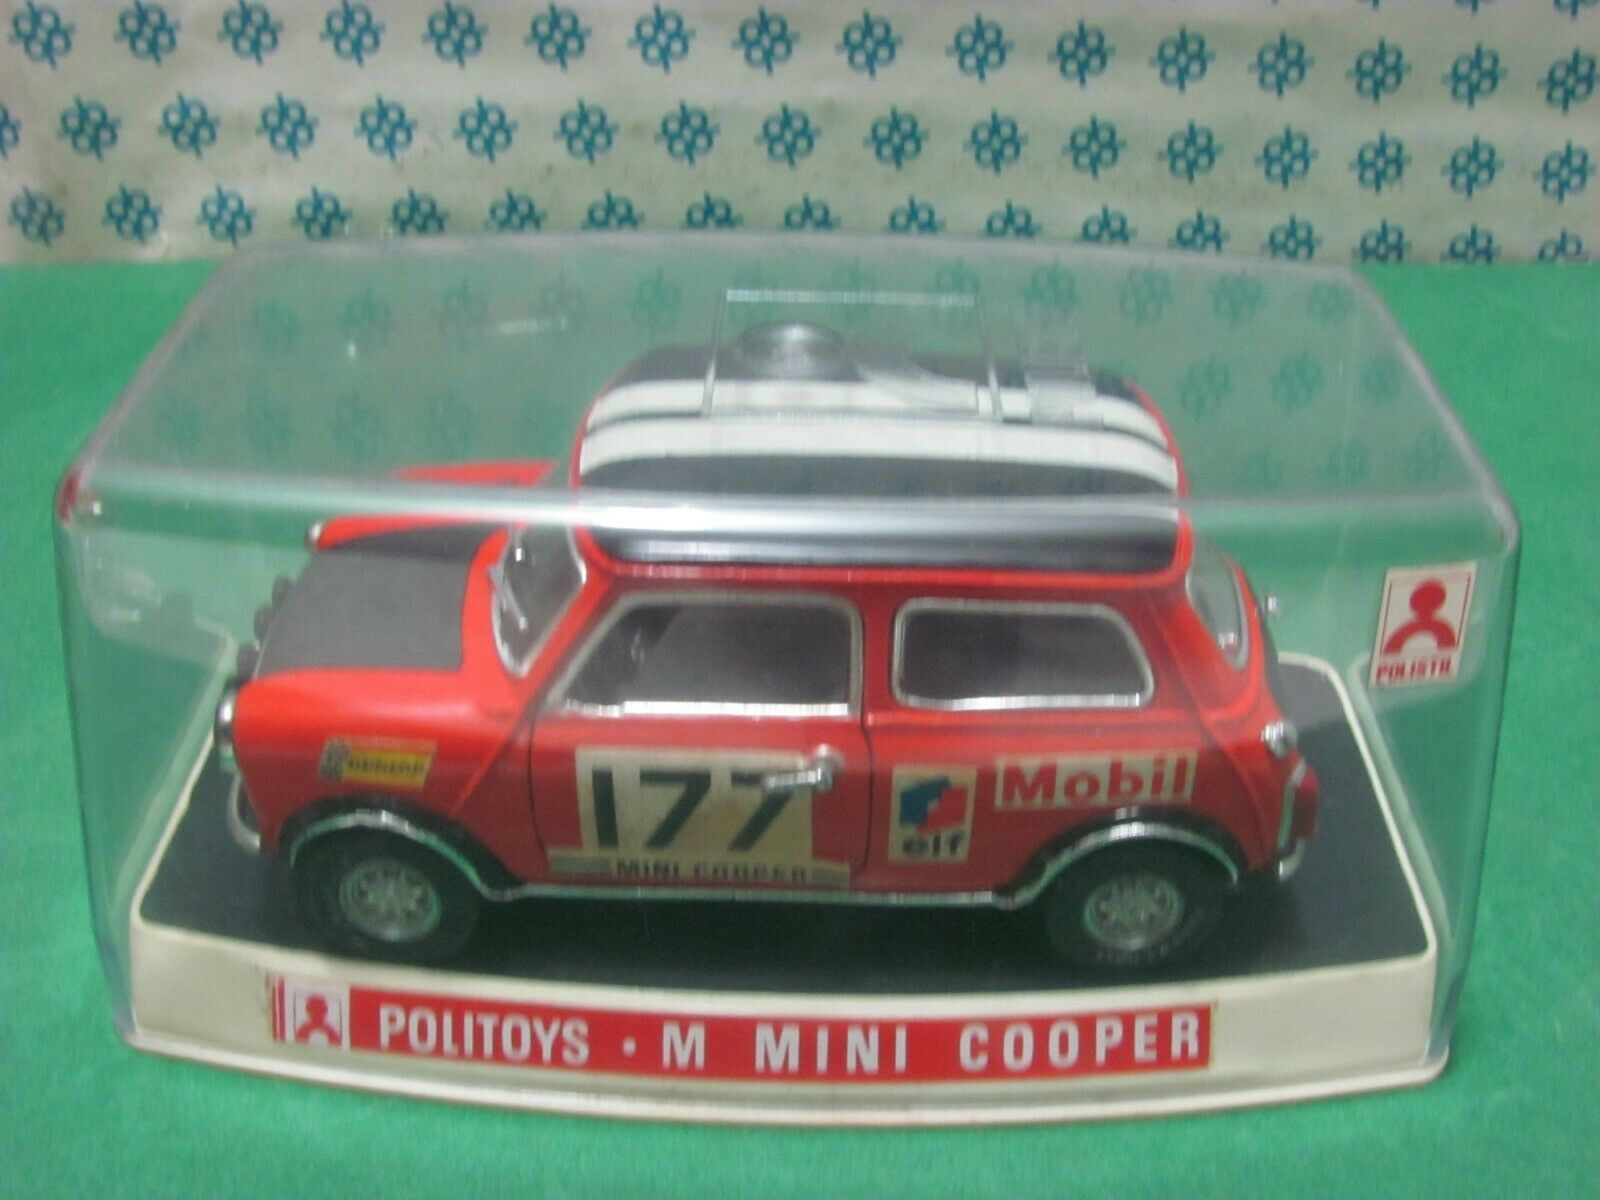 Vintage - Mini Cooper - 1 25 POLITOYS-M - Made in  - MIB